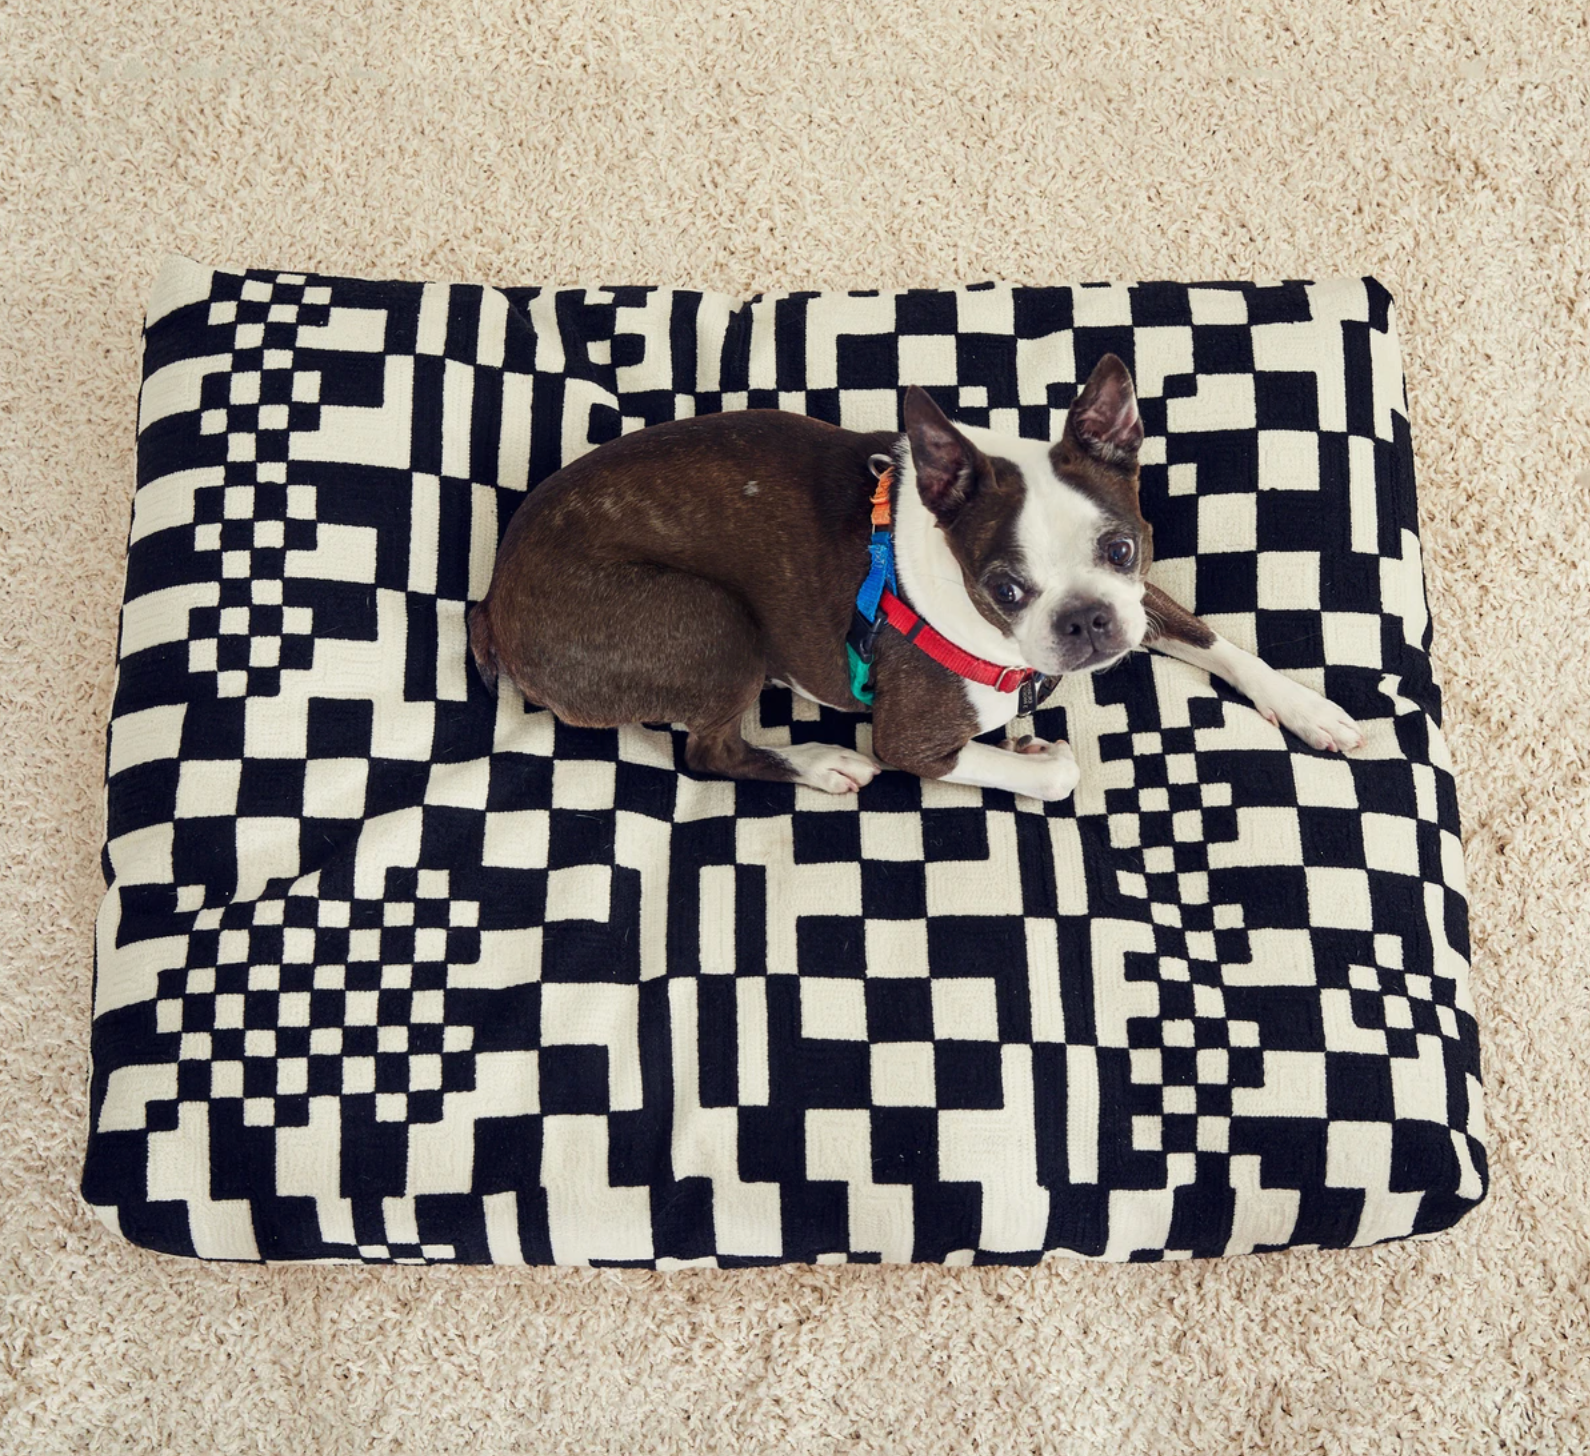 Embroidered Dog Beds